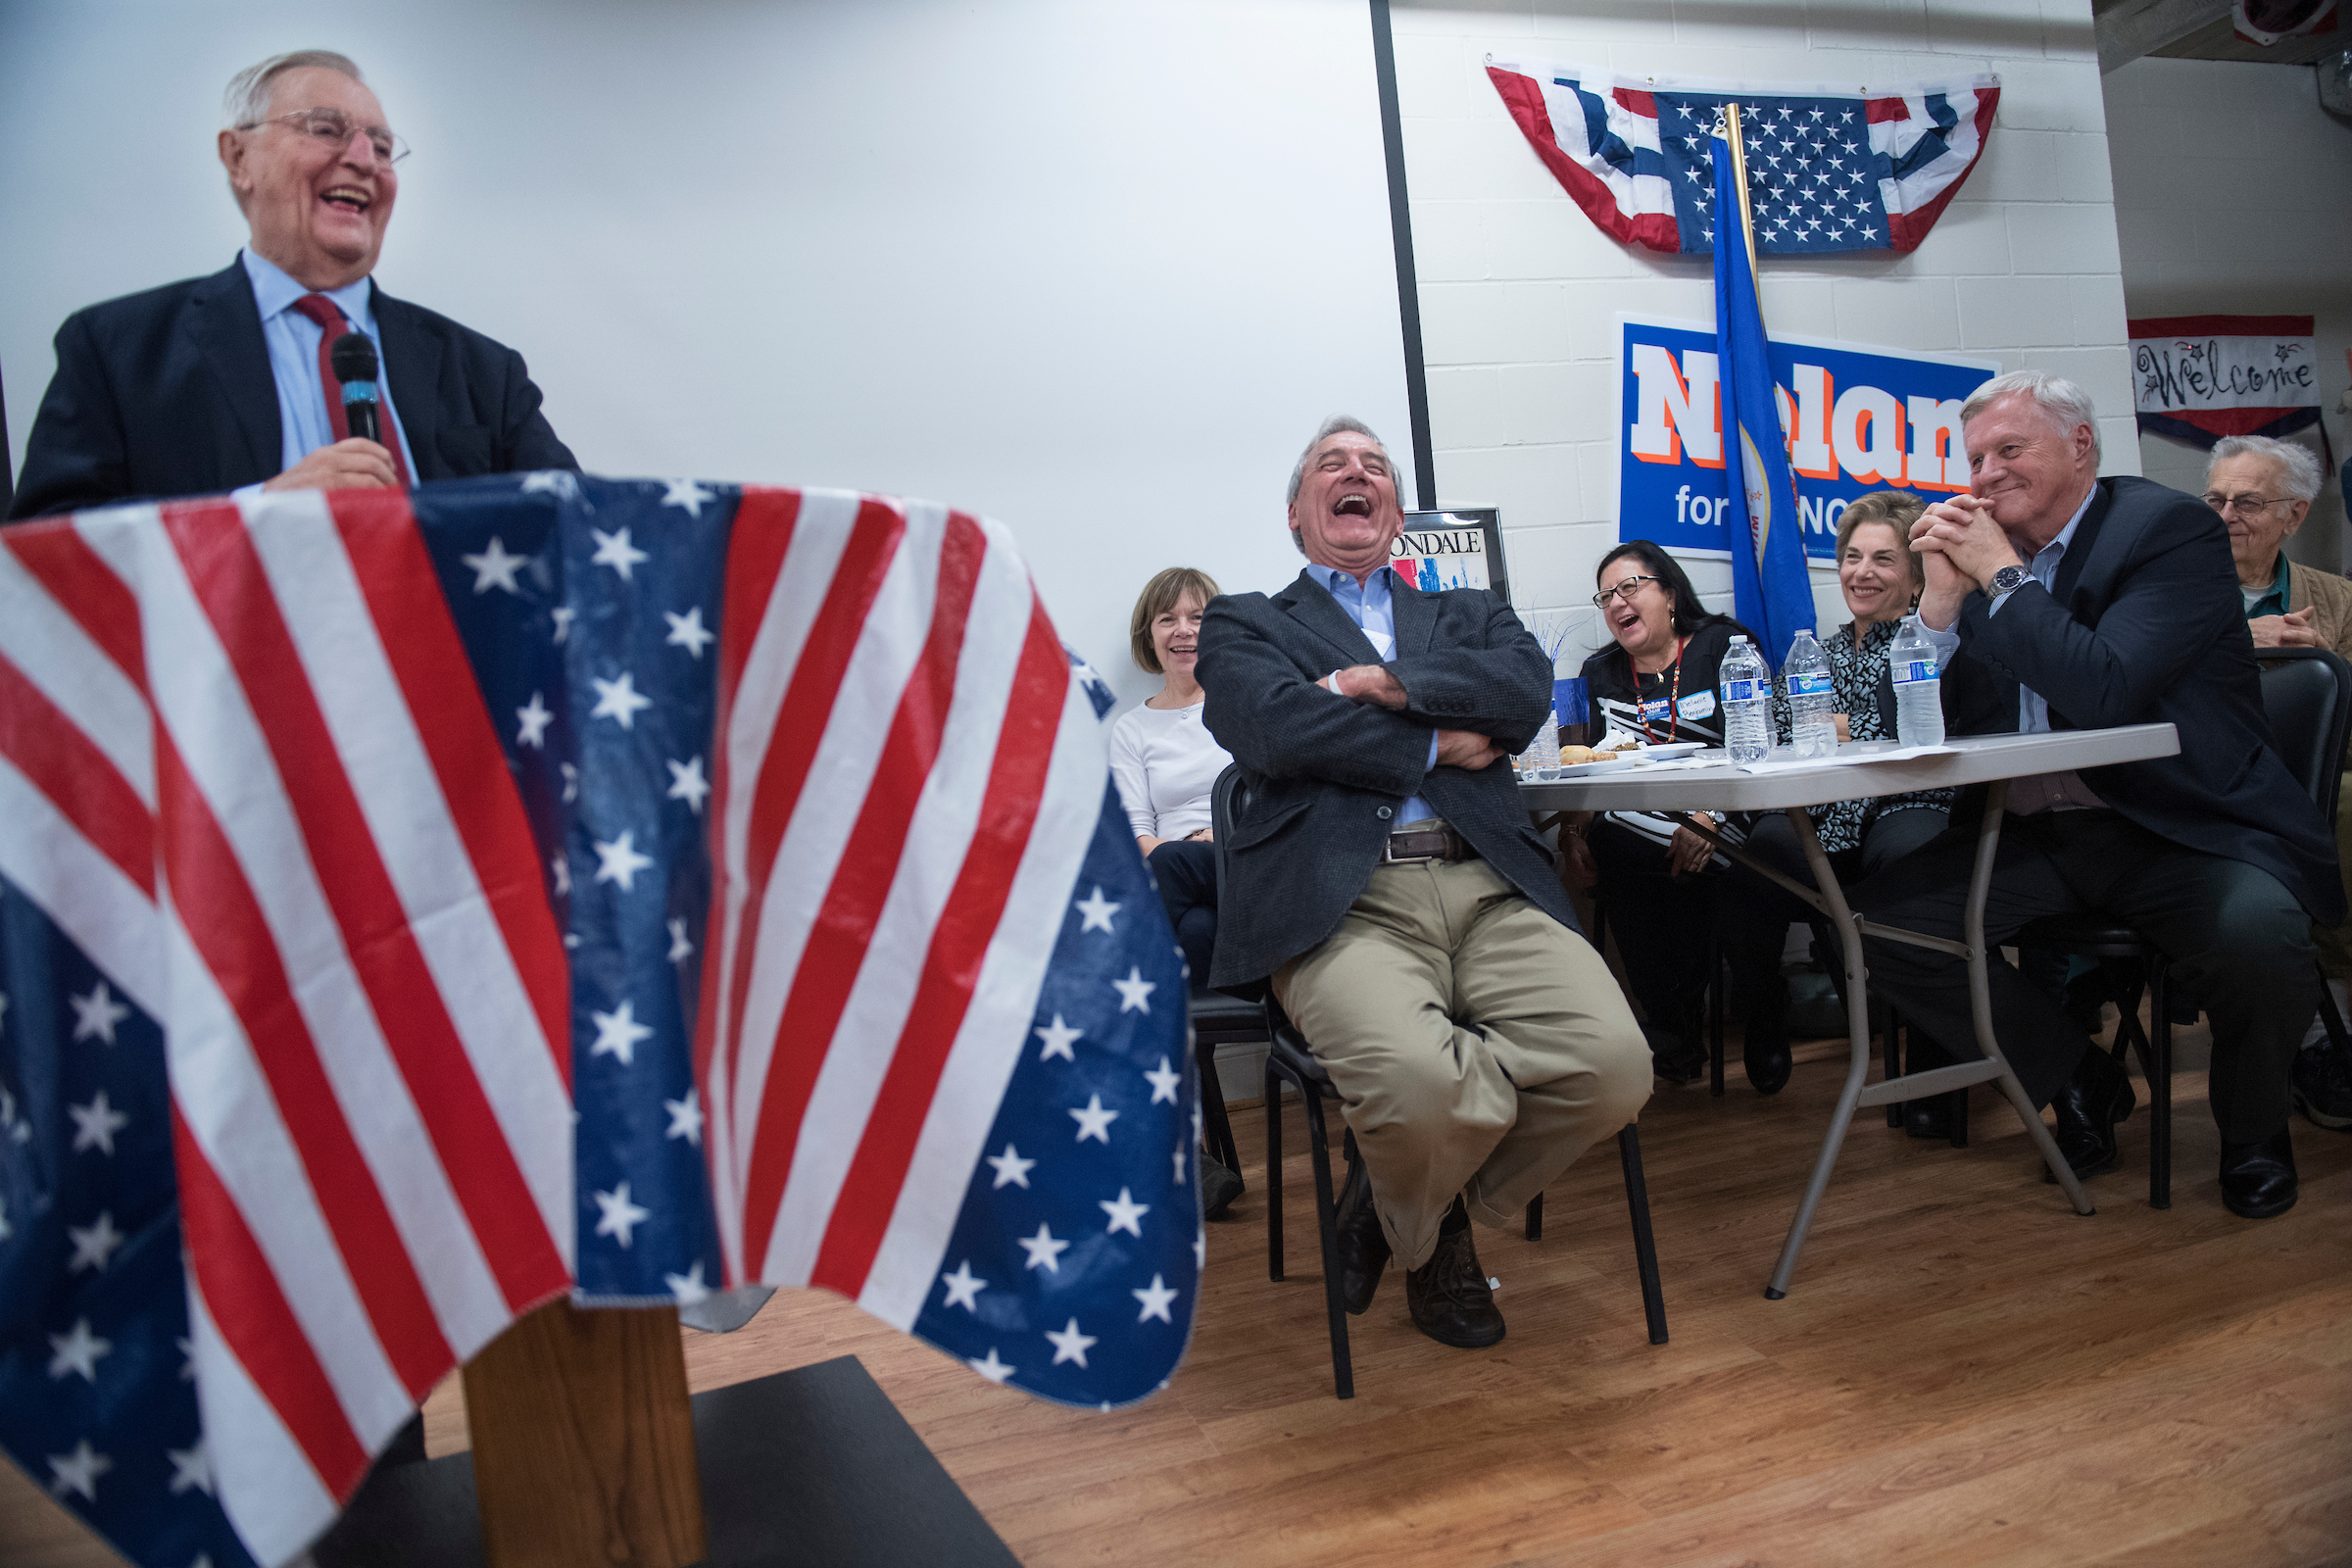 "Former Vice President Walter Mondale, left, speaks at a fish fry and fundraiser for Nolan, center, in Brainerd, Minn., on Oct. 27. Reps. Collin C. Peterson of Minnesota and <a class=""memberLink"" title=""Click to view member info in a new window"" href=""http://data.rollcall.com/members/164?rel=memberLink"" target=""_blank"">Jan Schakowsky</a> of Illinois are also pictured. (Tom Williams/CQ Roll Call)"